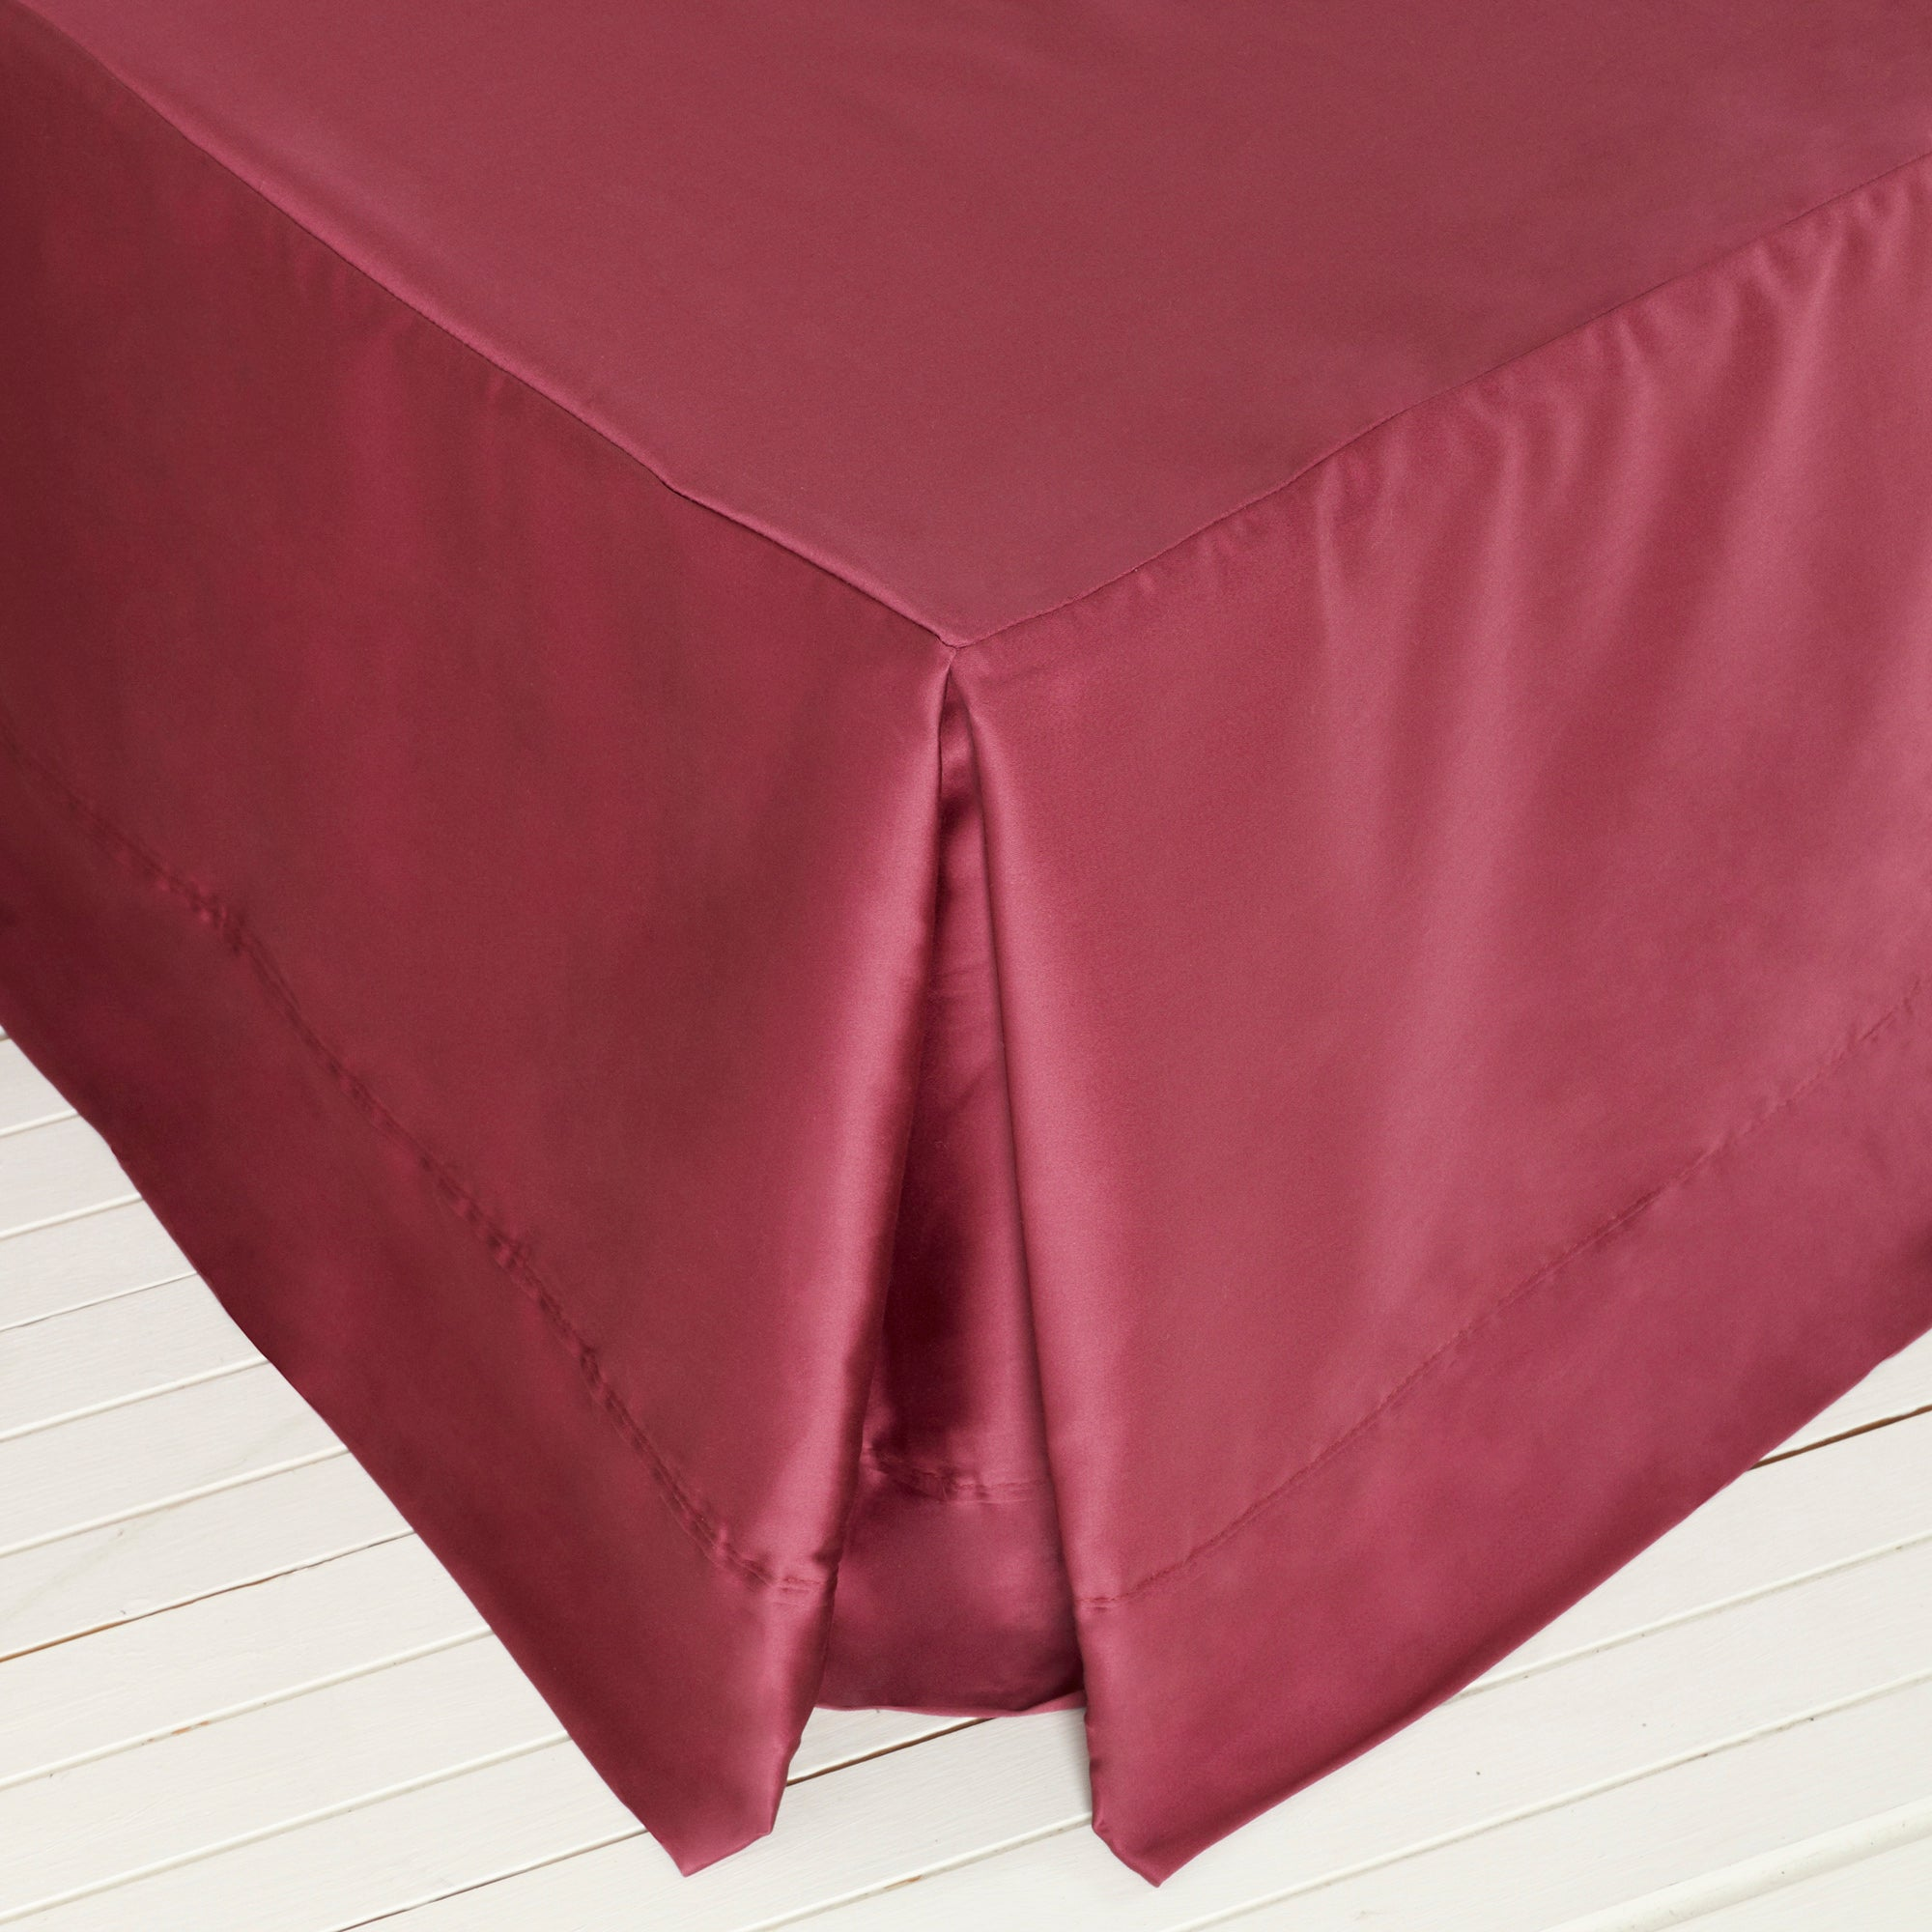 Dorma 350 Thread Count Plain Dye Collection Red Valance